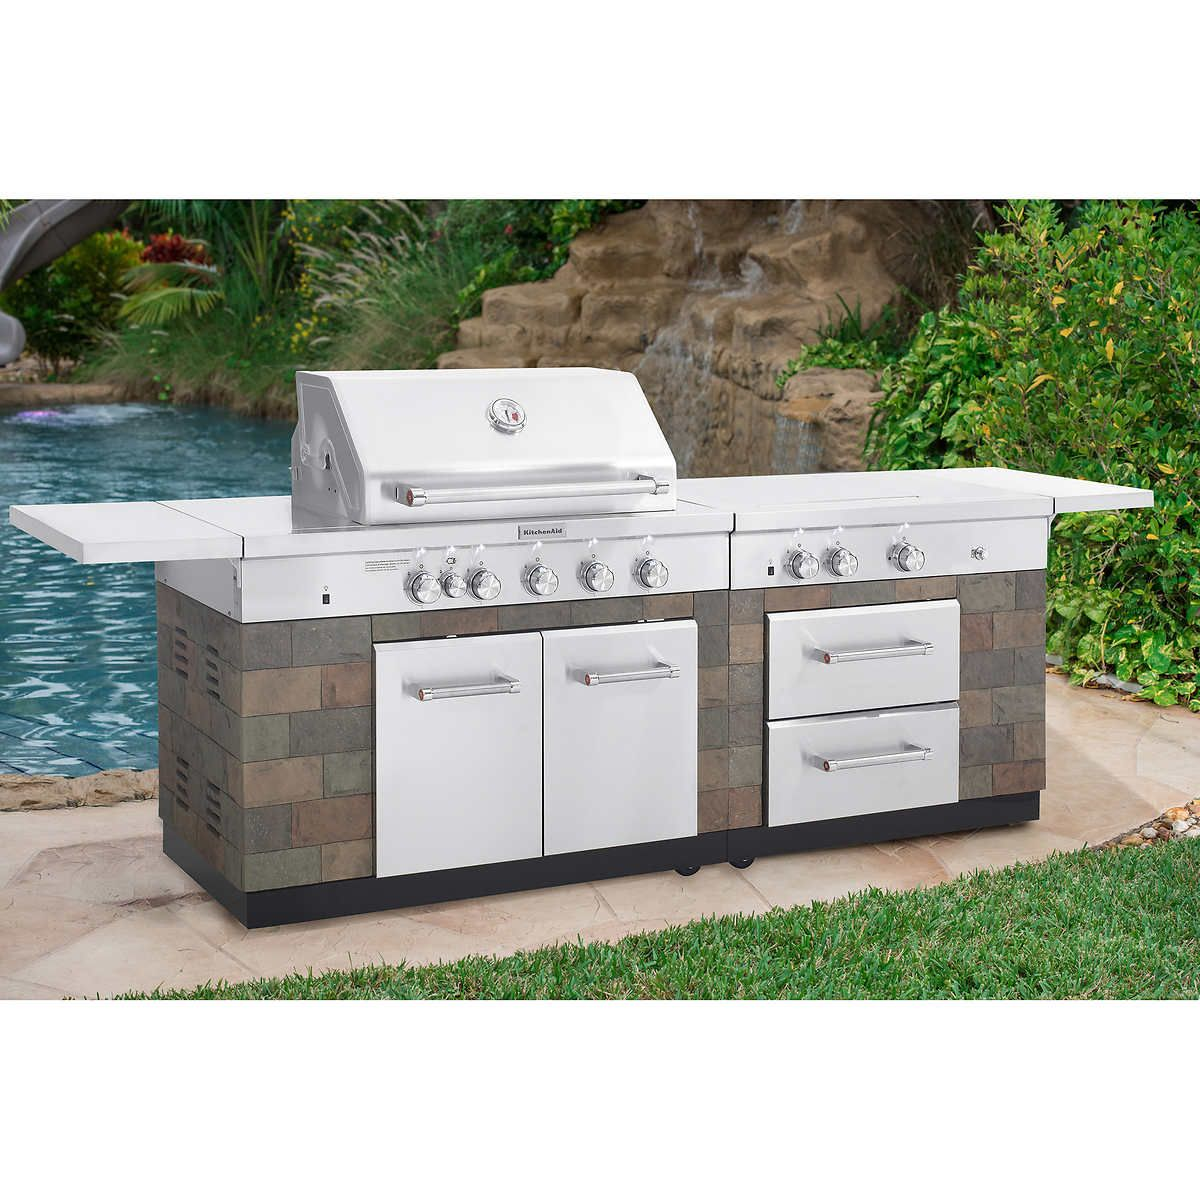 KitchenAid 9-burner Island Grill | Outdoor Living | Pinterest ...